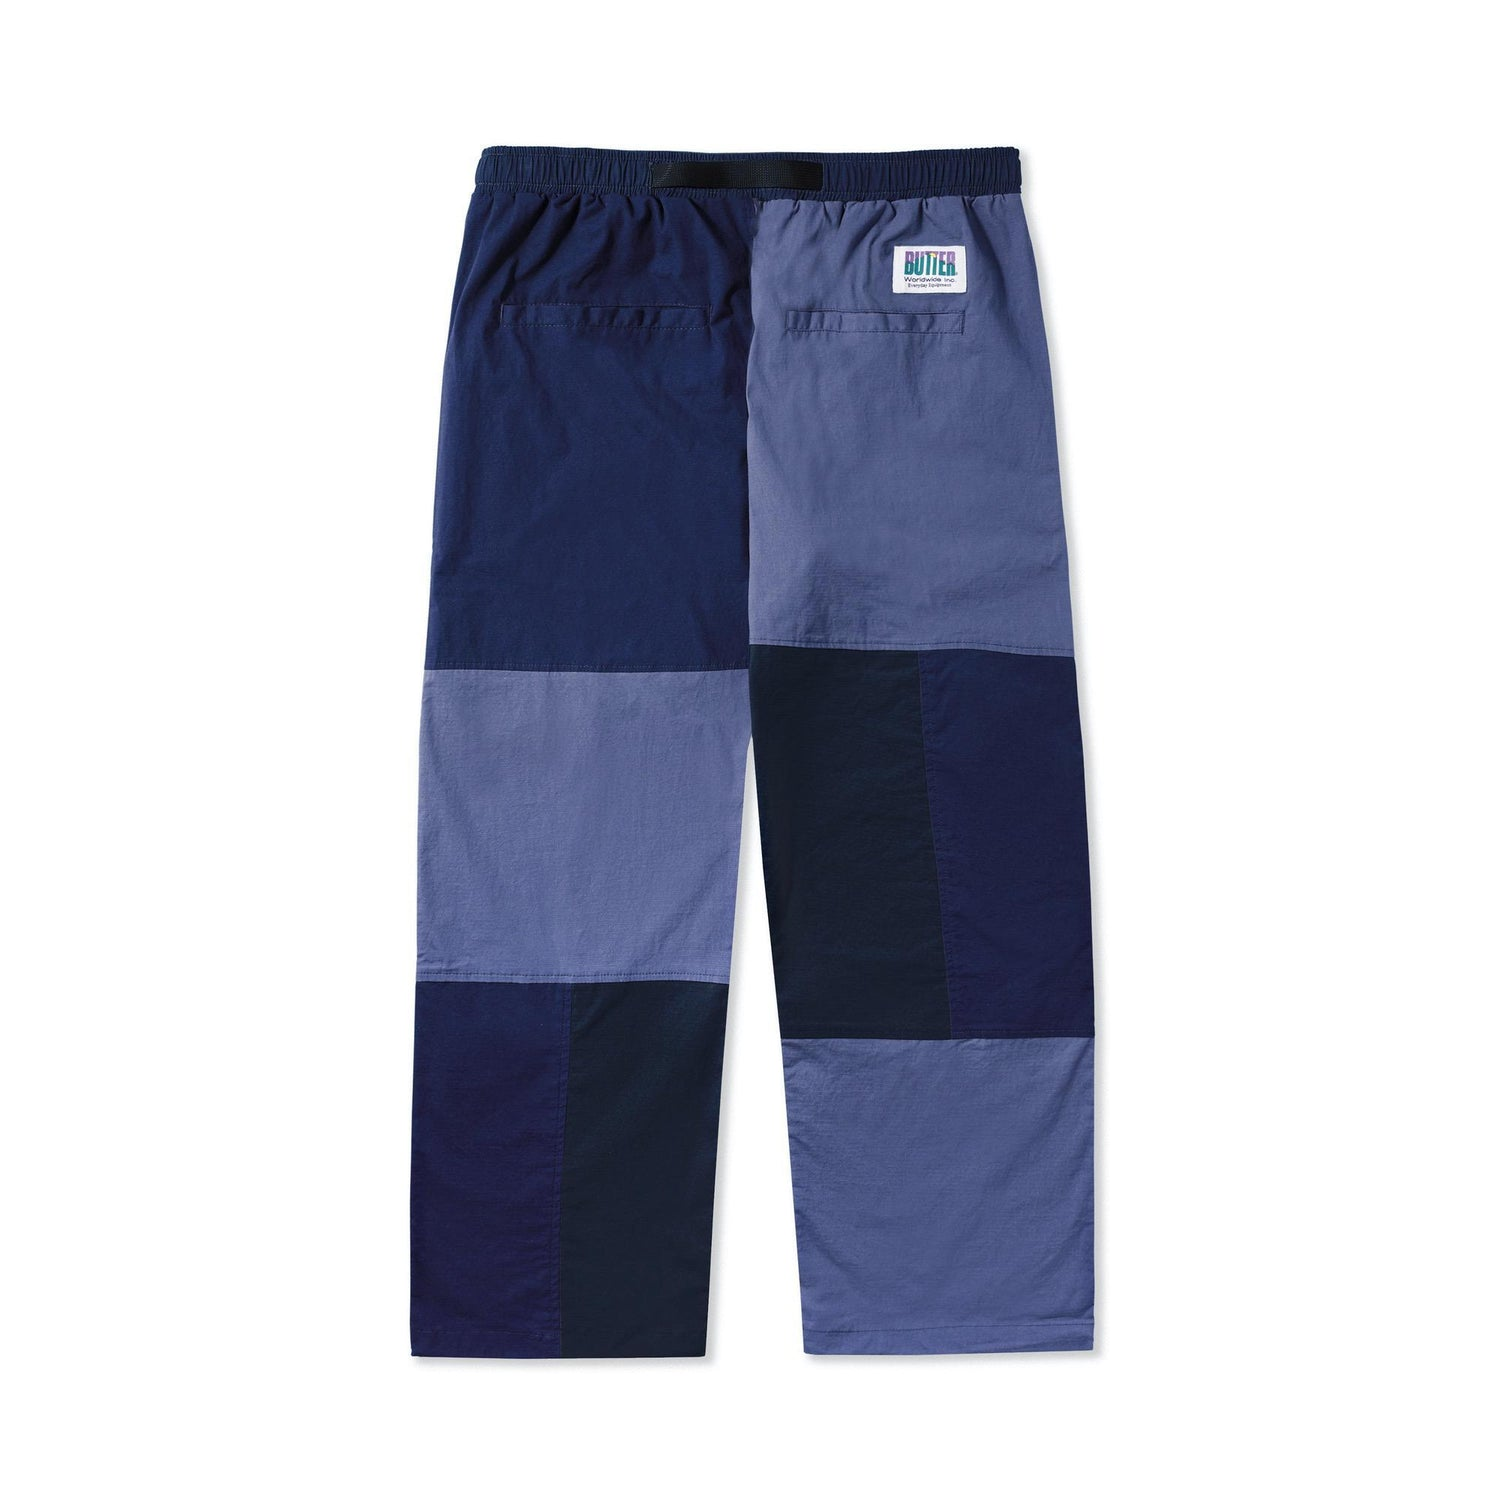 Patchwork Pants, Navy